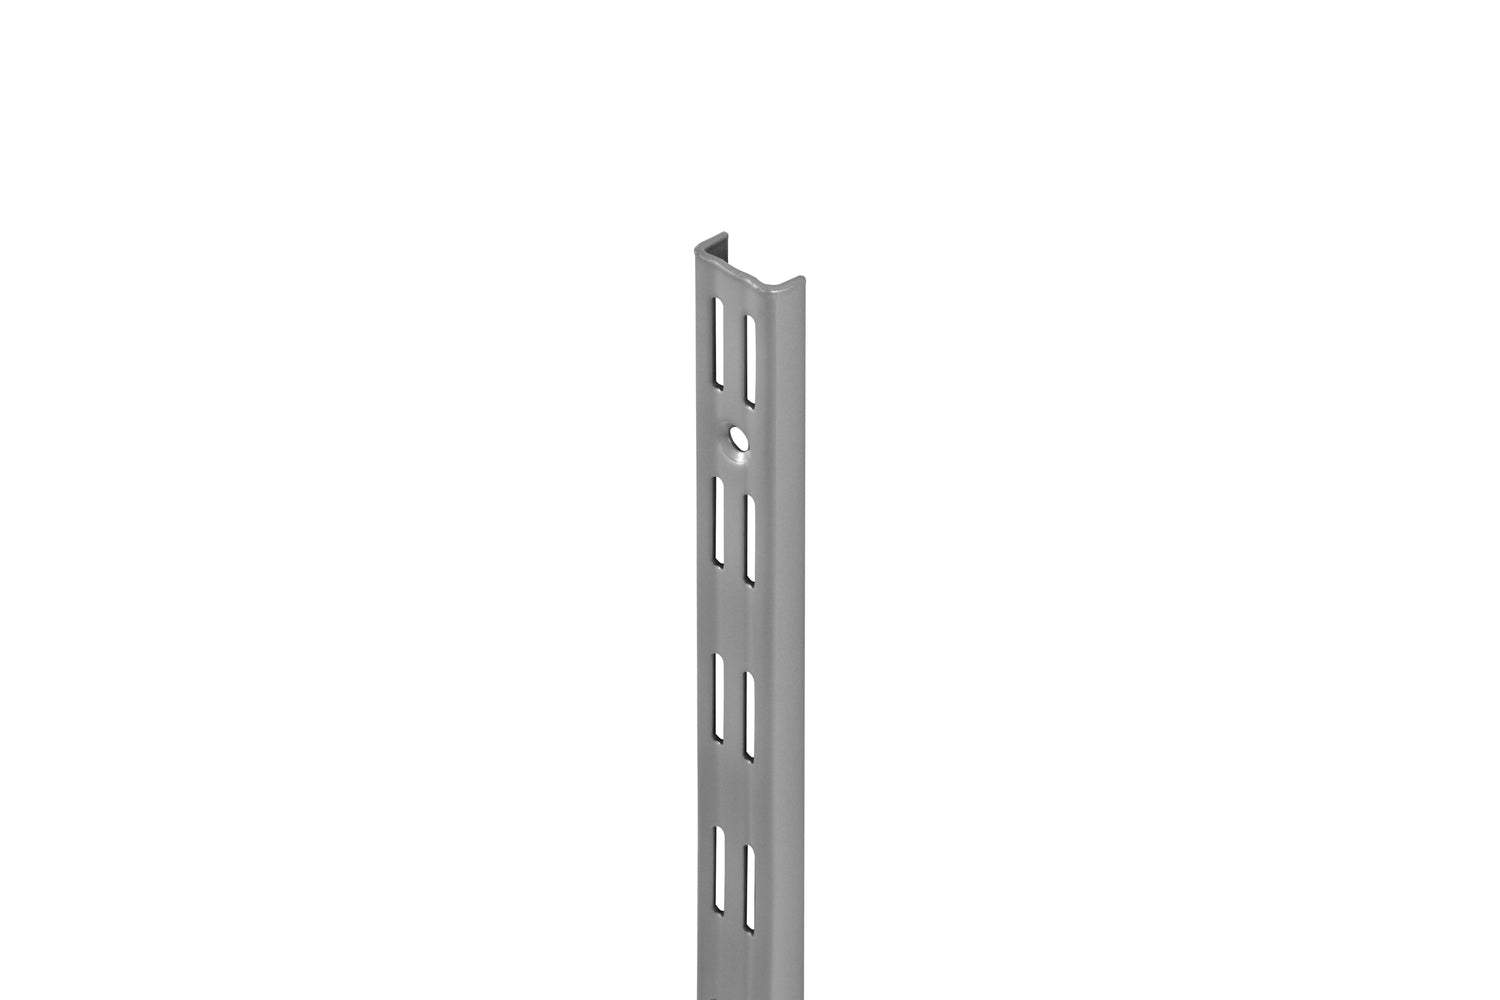 Dolle Primeslot Double Slotted Wall Upright Silver